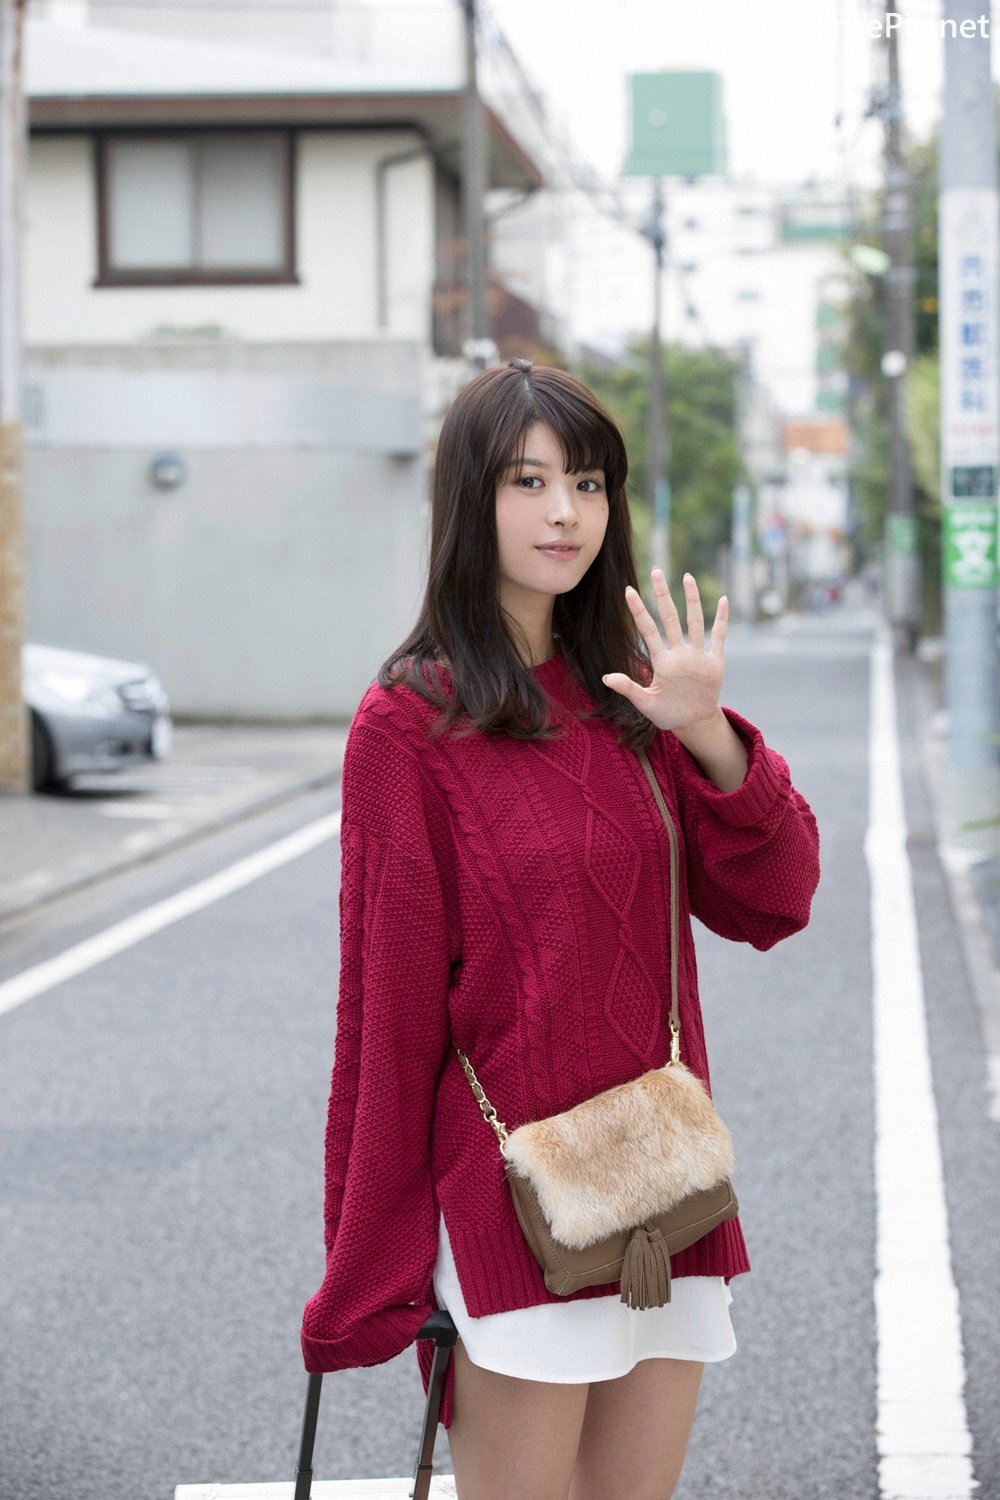 Japanese Actress And Model - Fumika Baba - YS Web Vol.729 - TruePic.net - Picture-3